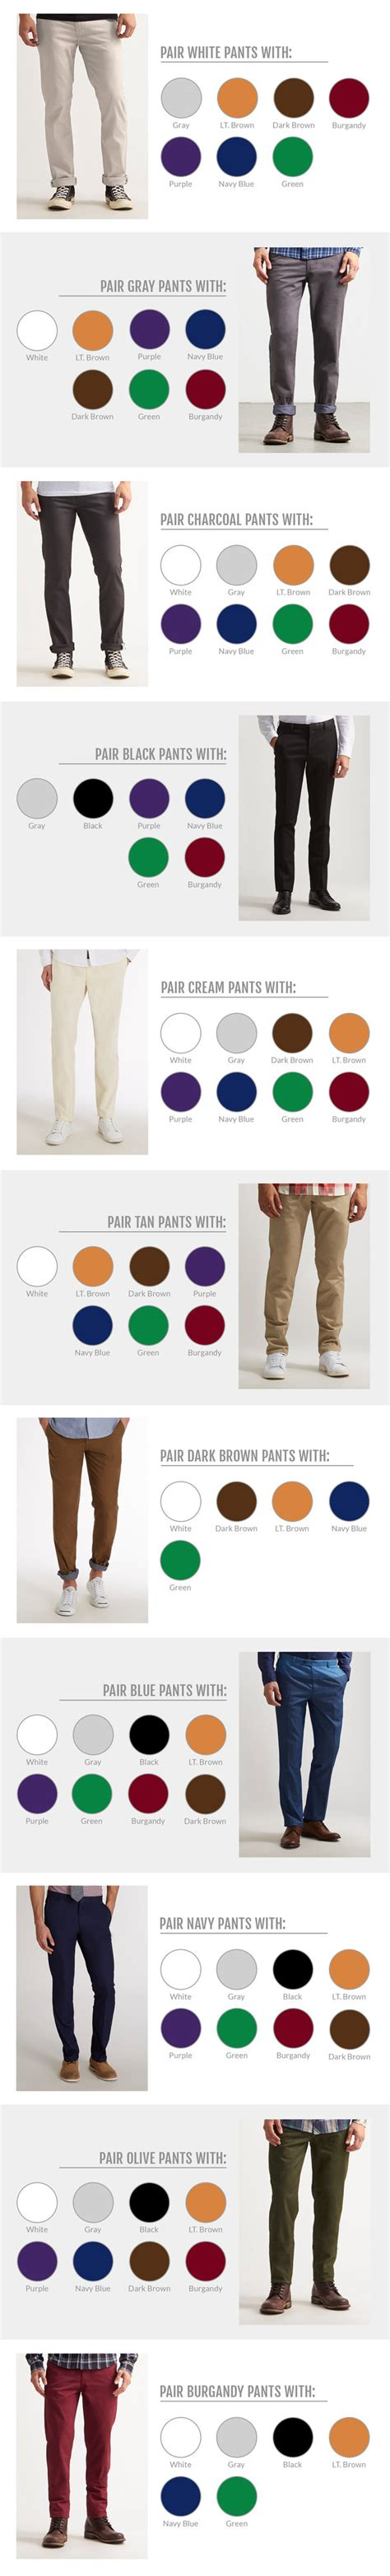 how to match colors how to match clothes colored and colorful shoes